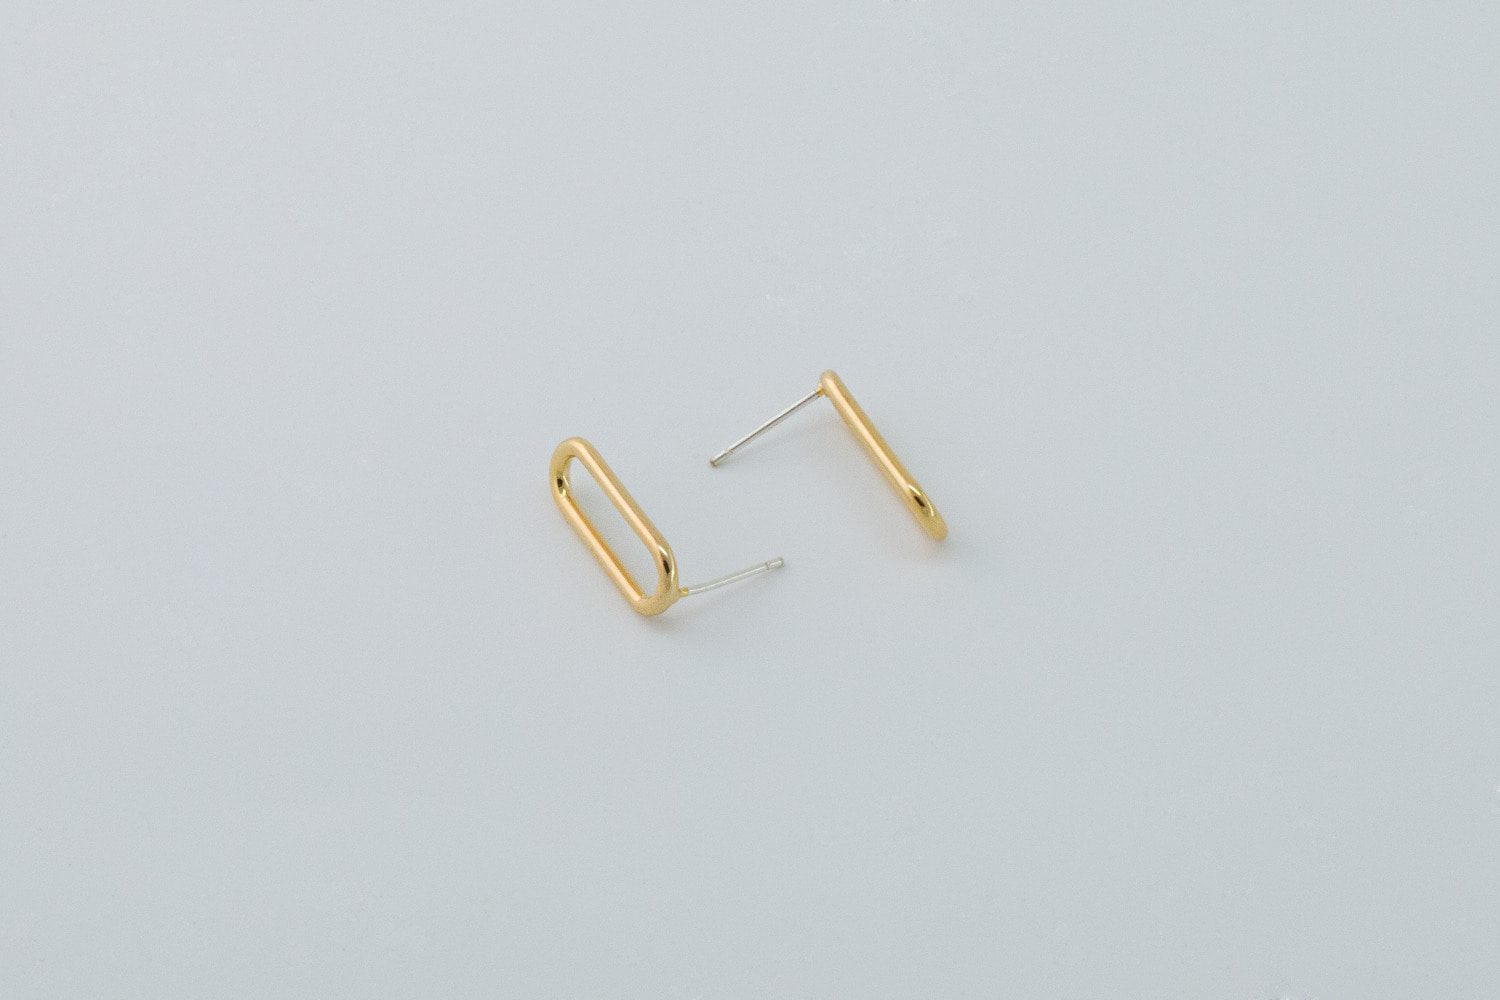 Simple oval earring w/ 925 silver post, T63-G1